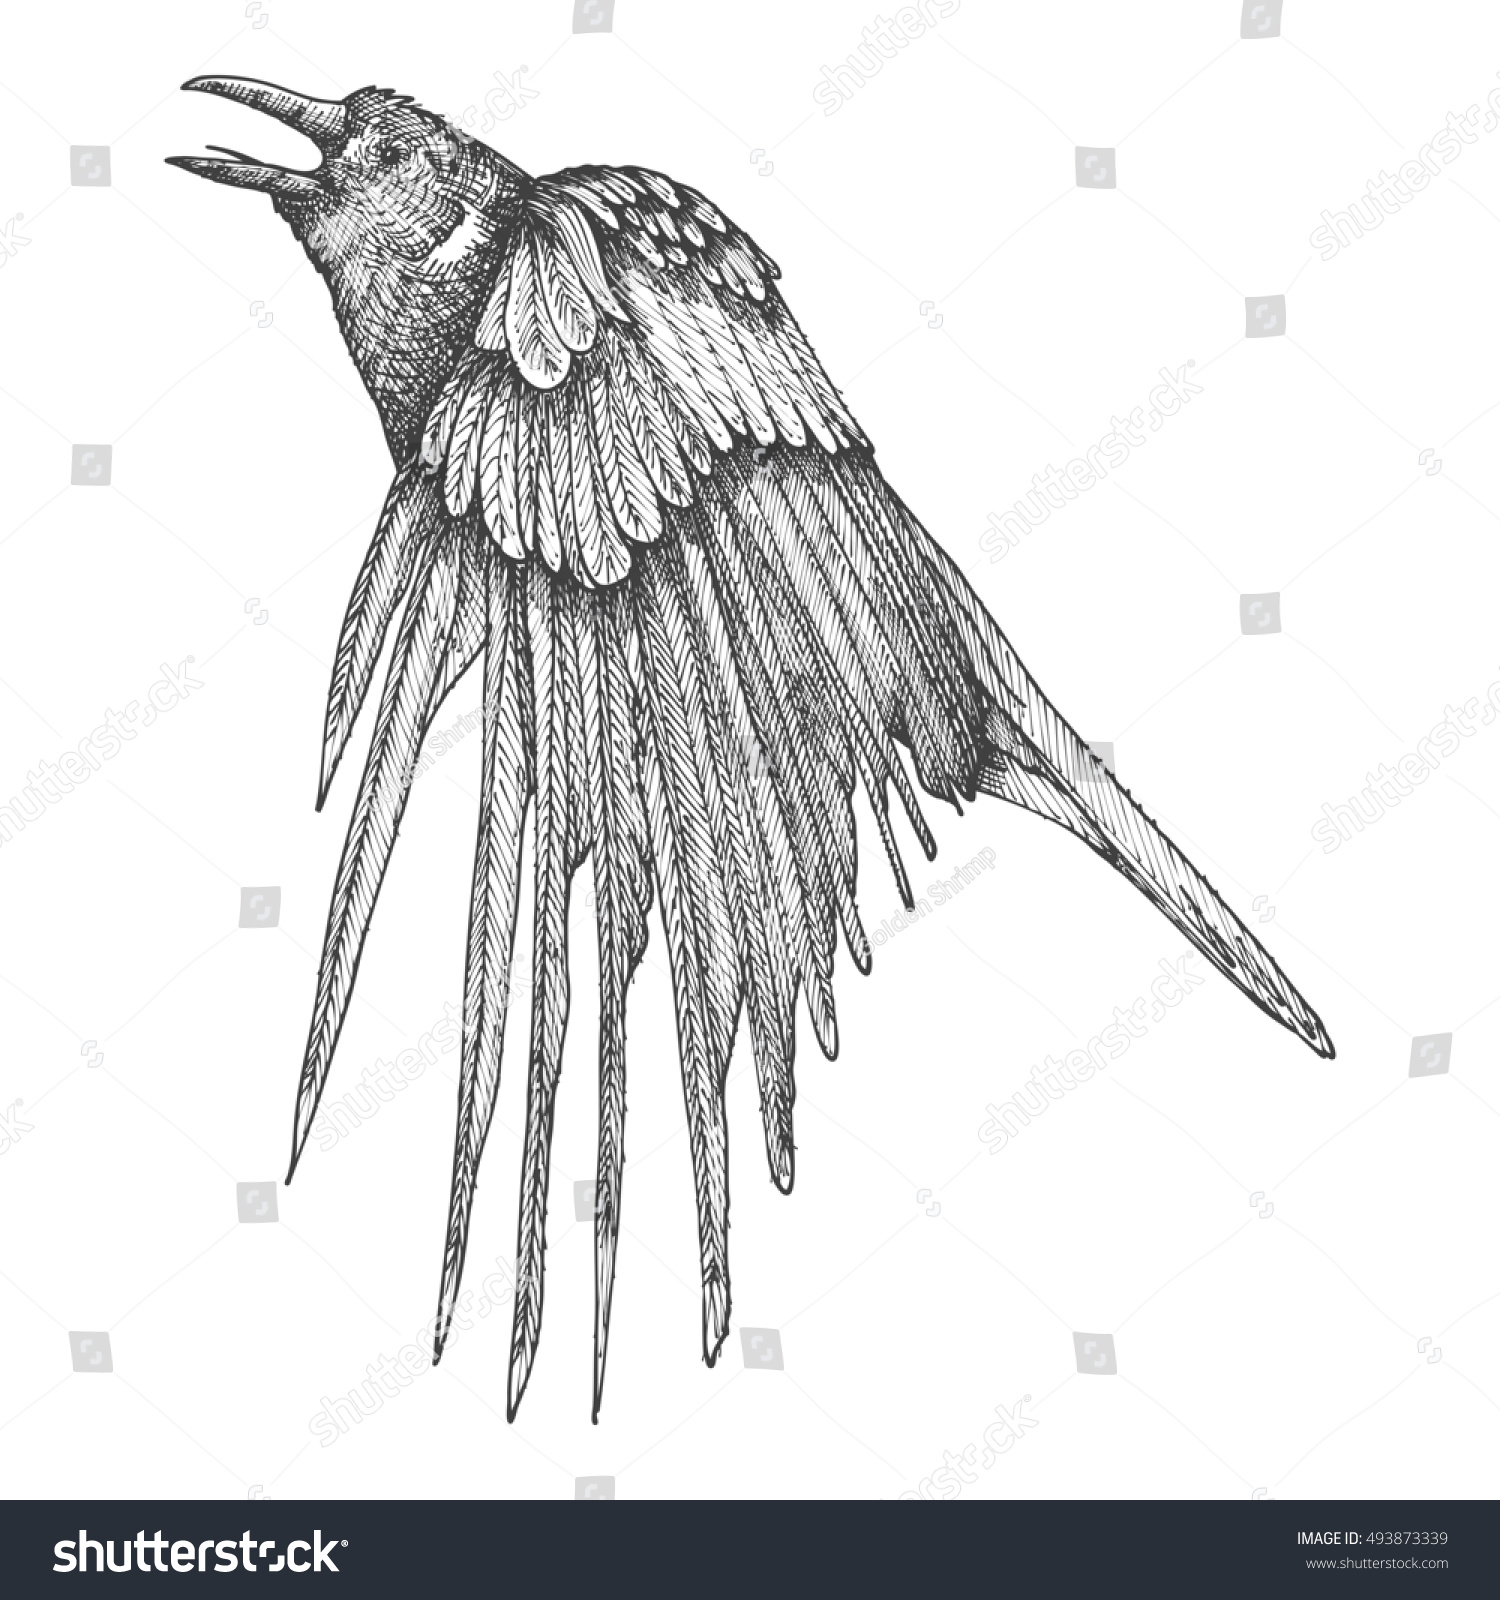 Line Drawing Raven : Stylized hand drawing crow decorative bird stock